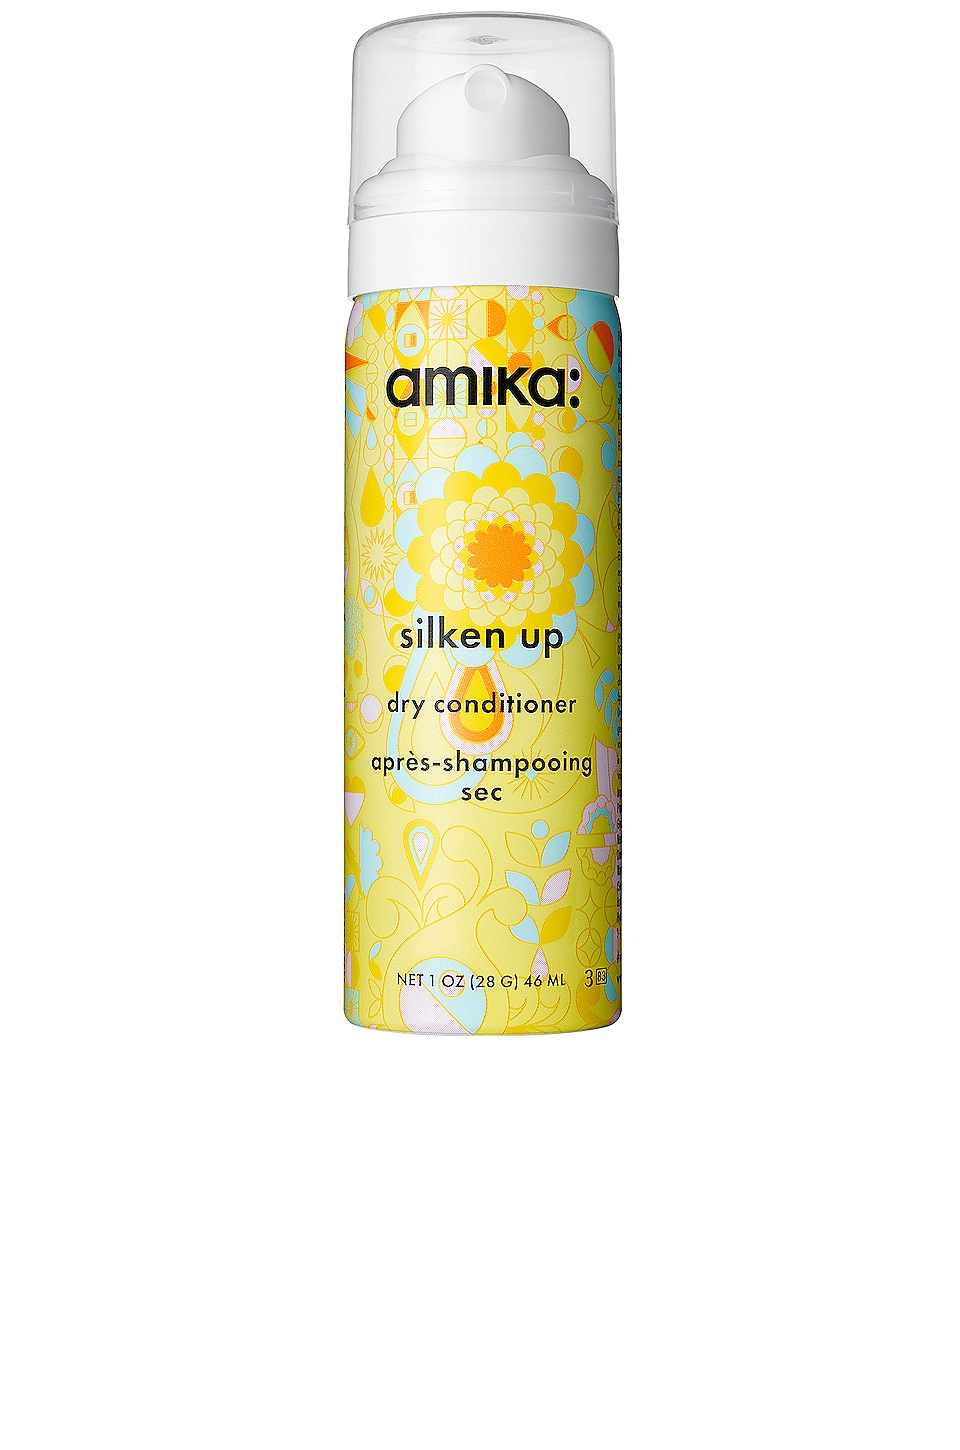 Amika Travel Silken Up Dry Conditioner